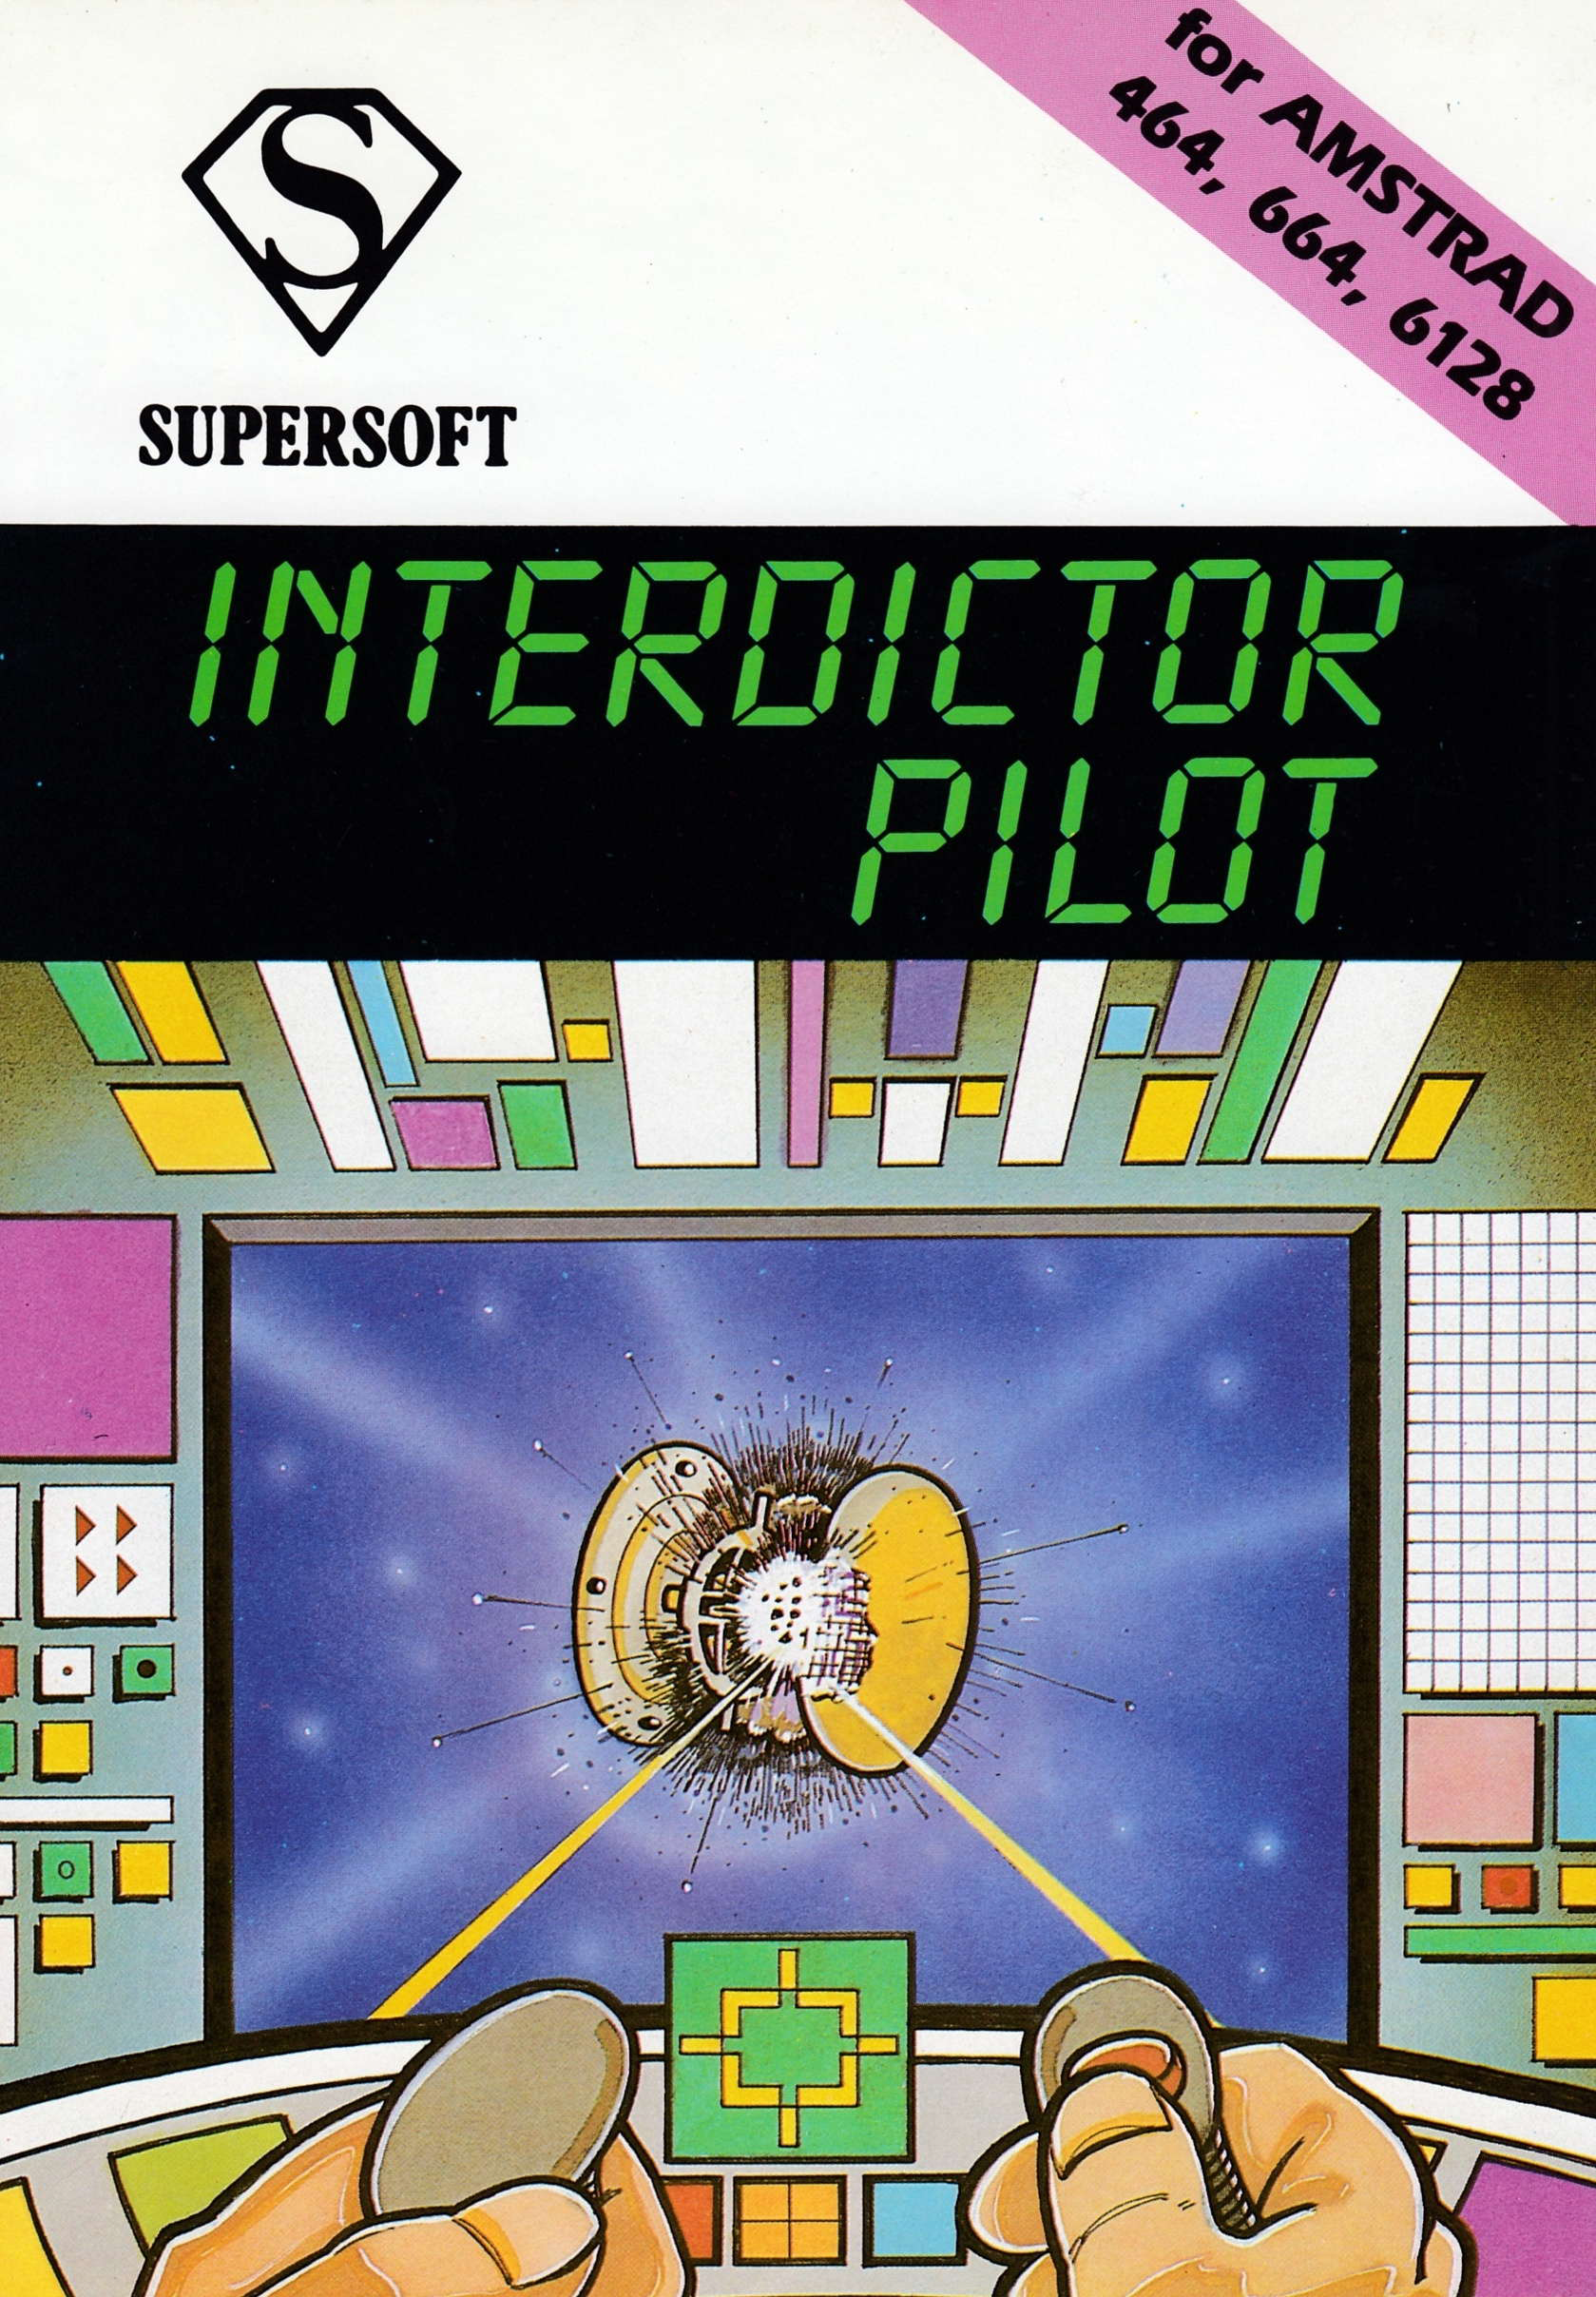 cover of the Amstrad CPC game Interdictor Pilot  by GameBase CPC